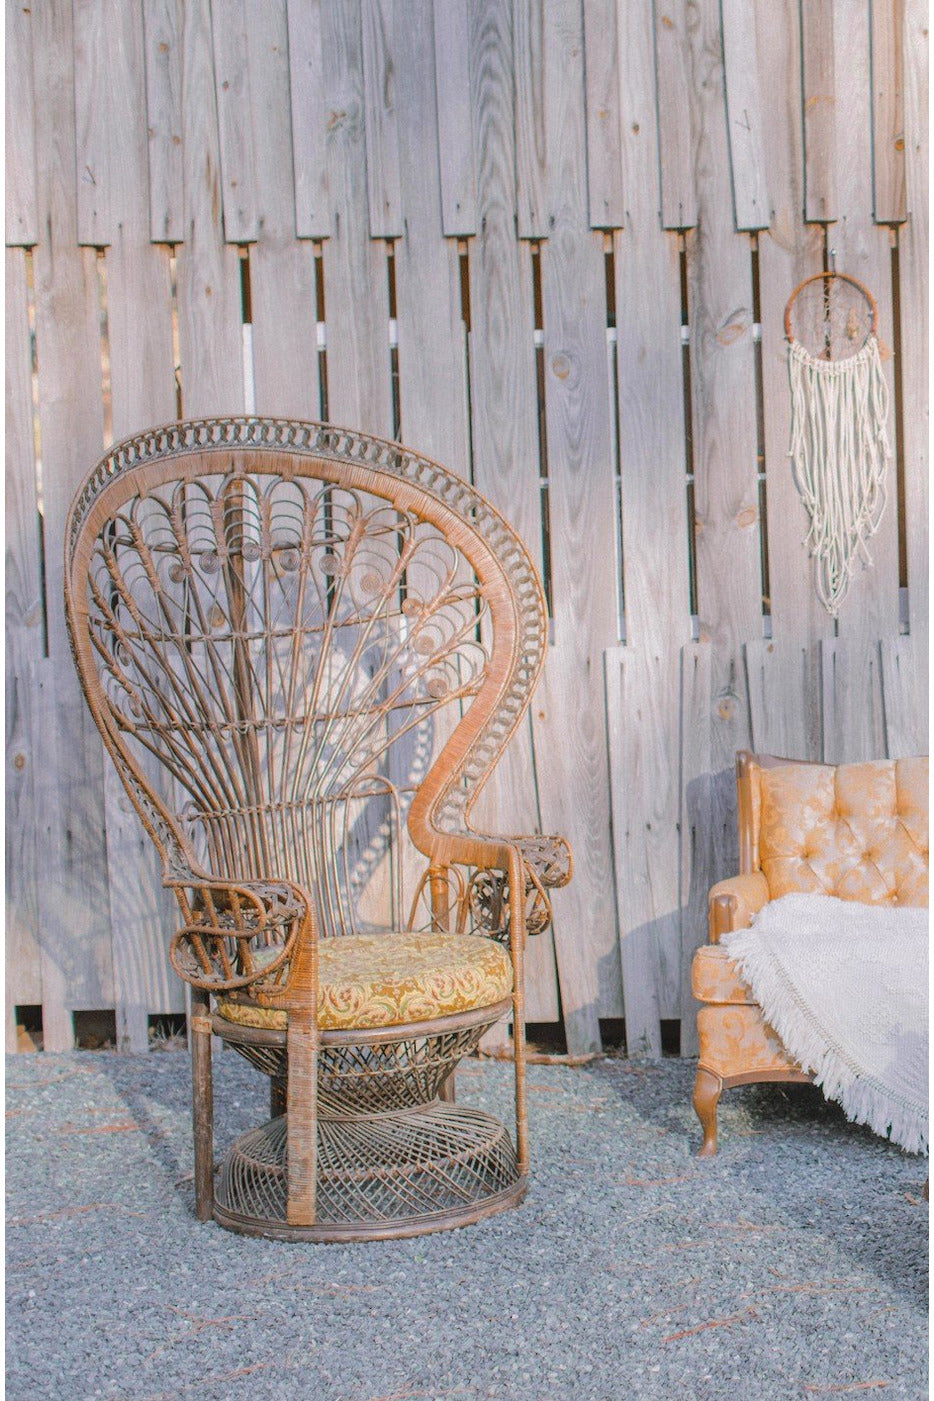 BROWN ORNATE PEACOCK CHAIR - RENTAL